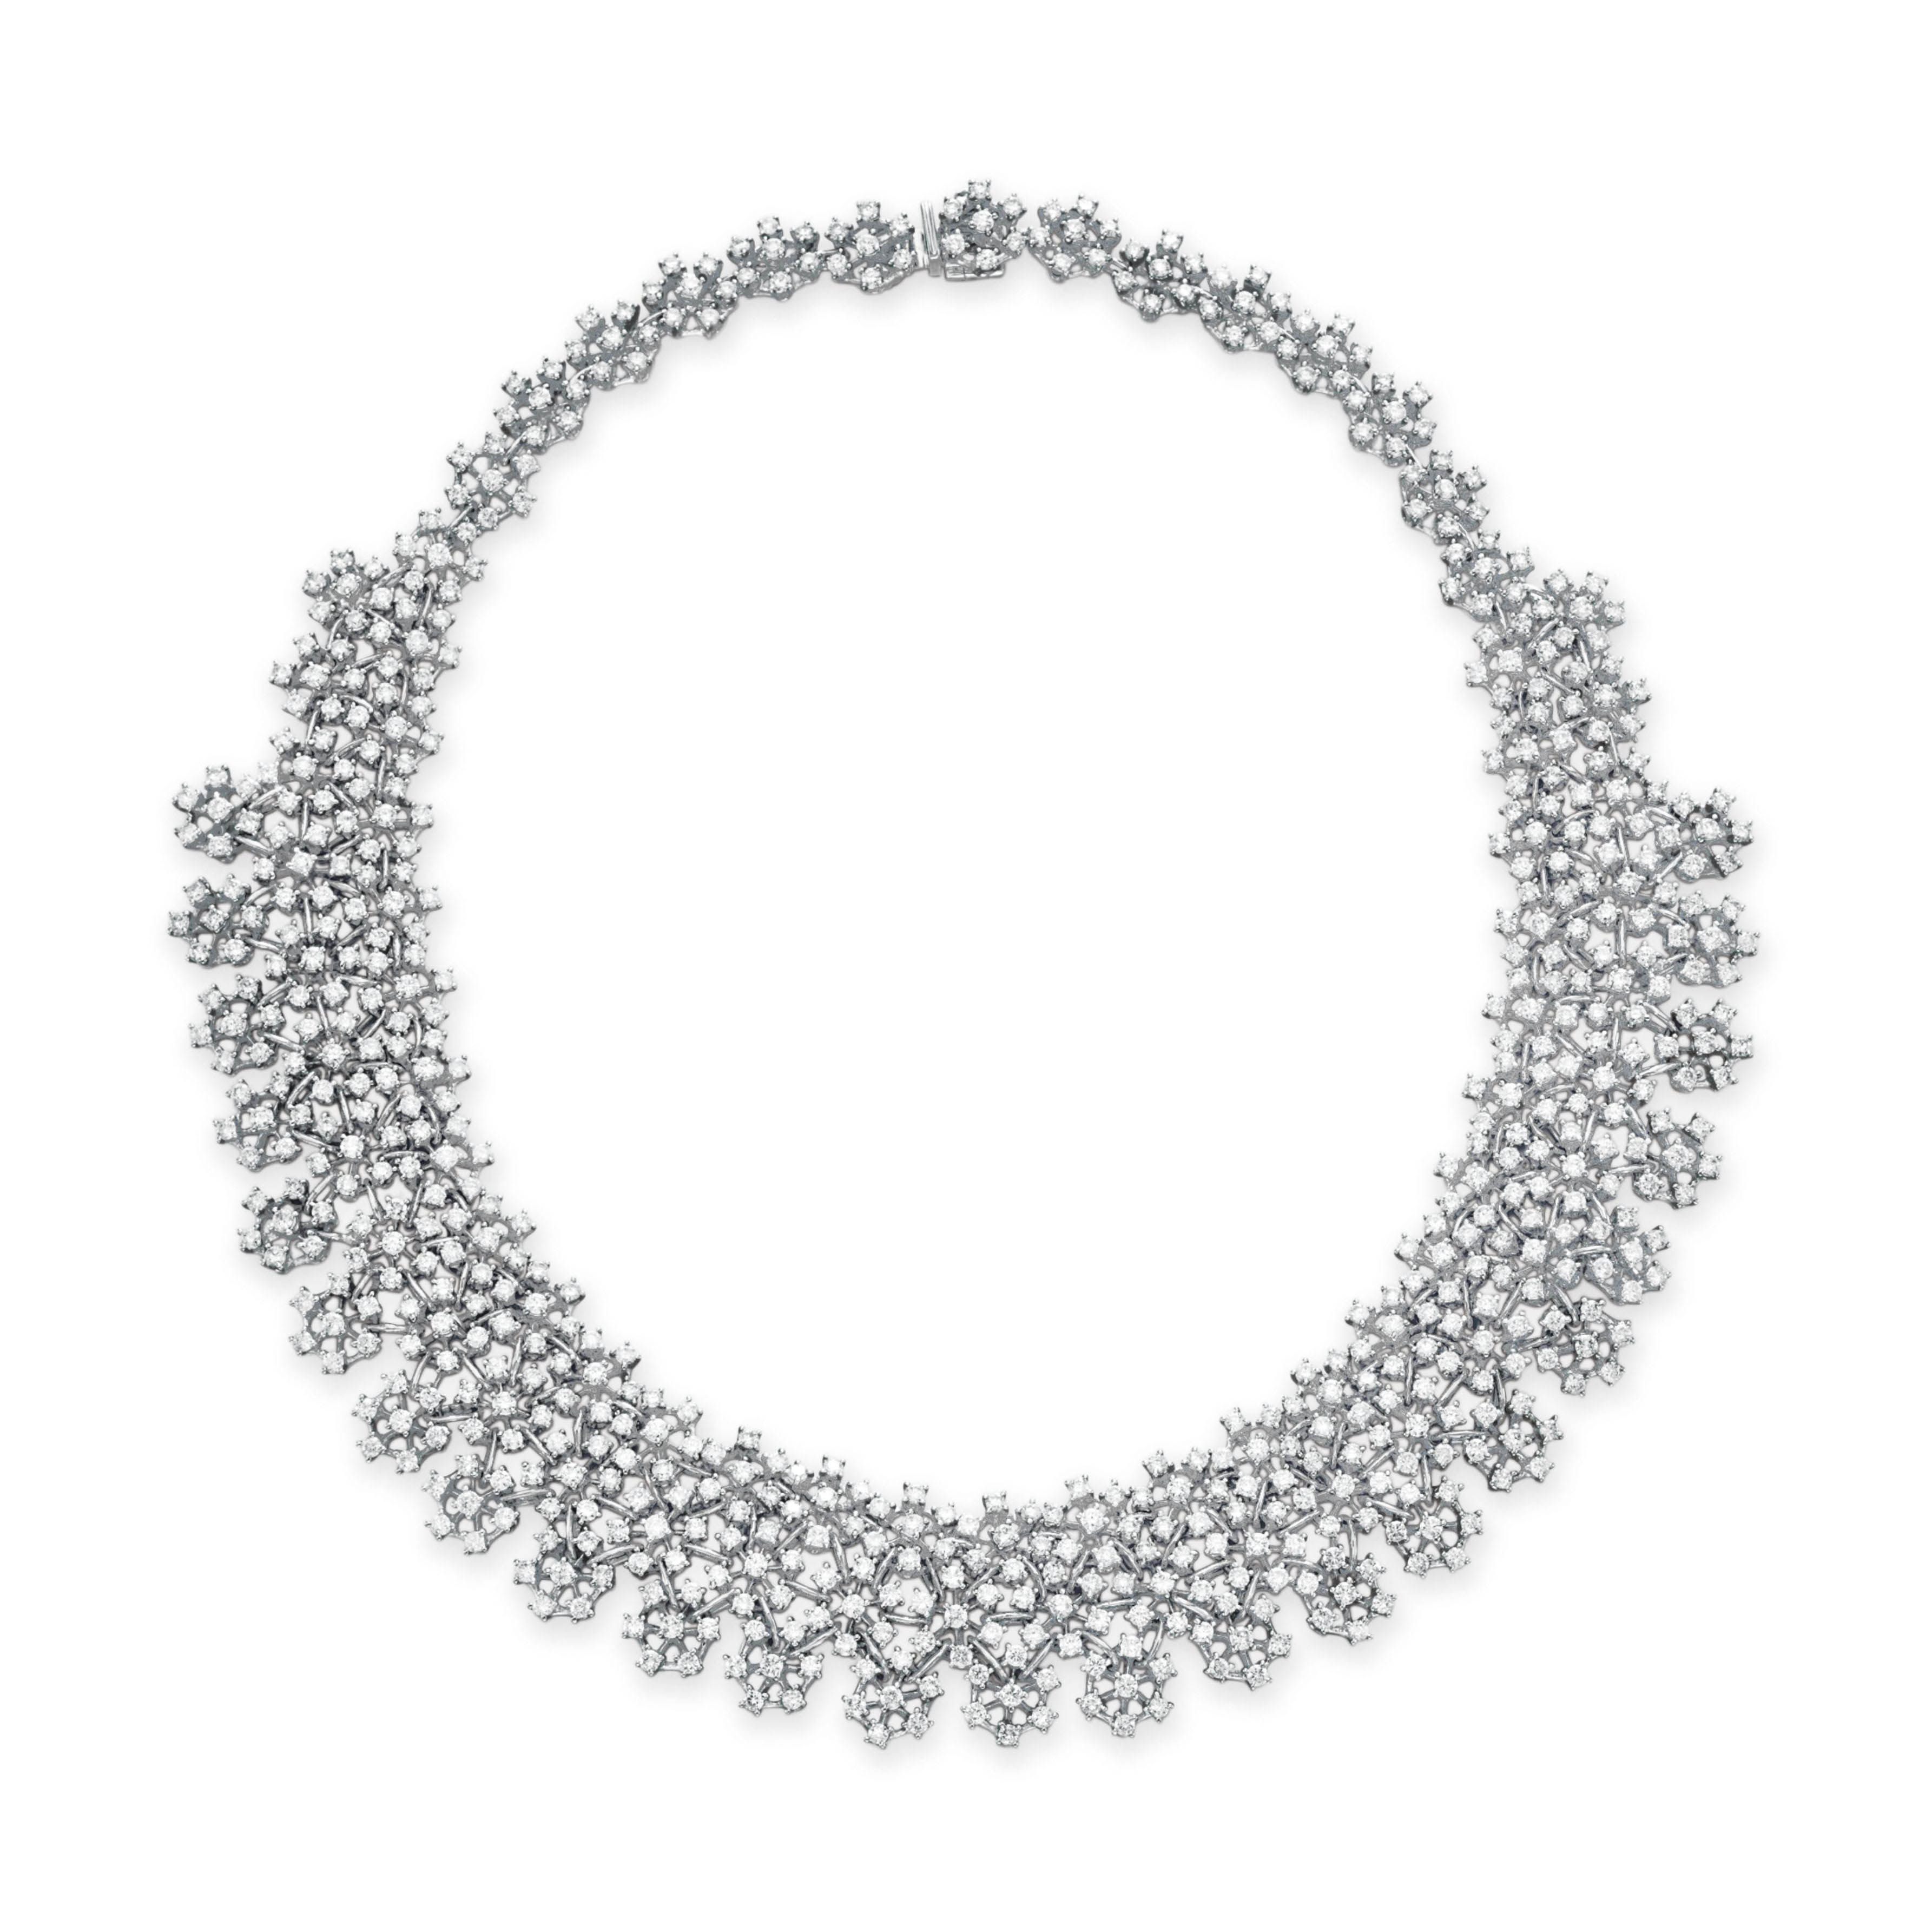 A DIAMOND NECKLACE, BY HOUSE OF TAYLOR